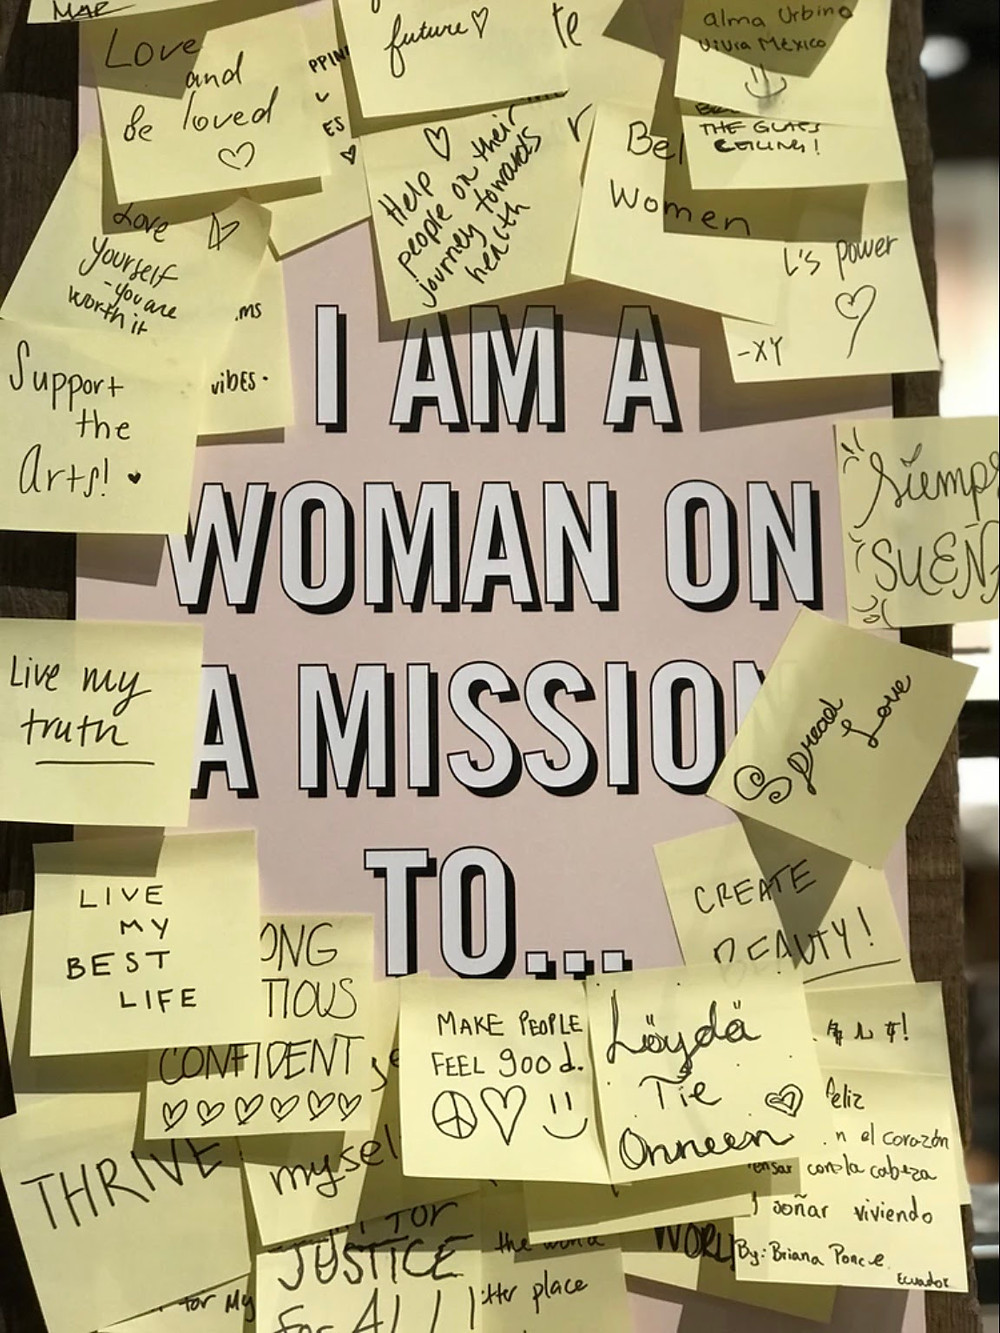 """The Jaguar Times wishes every """"Woman on a Mission"""" a happy Women's History Month! Photo by Valentina Conde on Unsplash."""